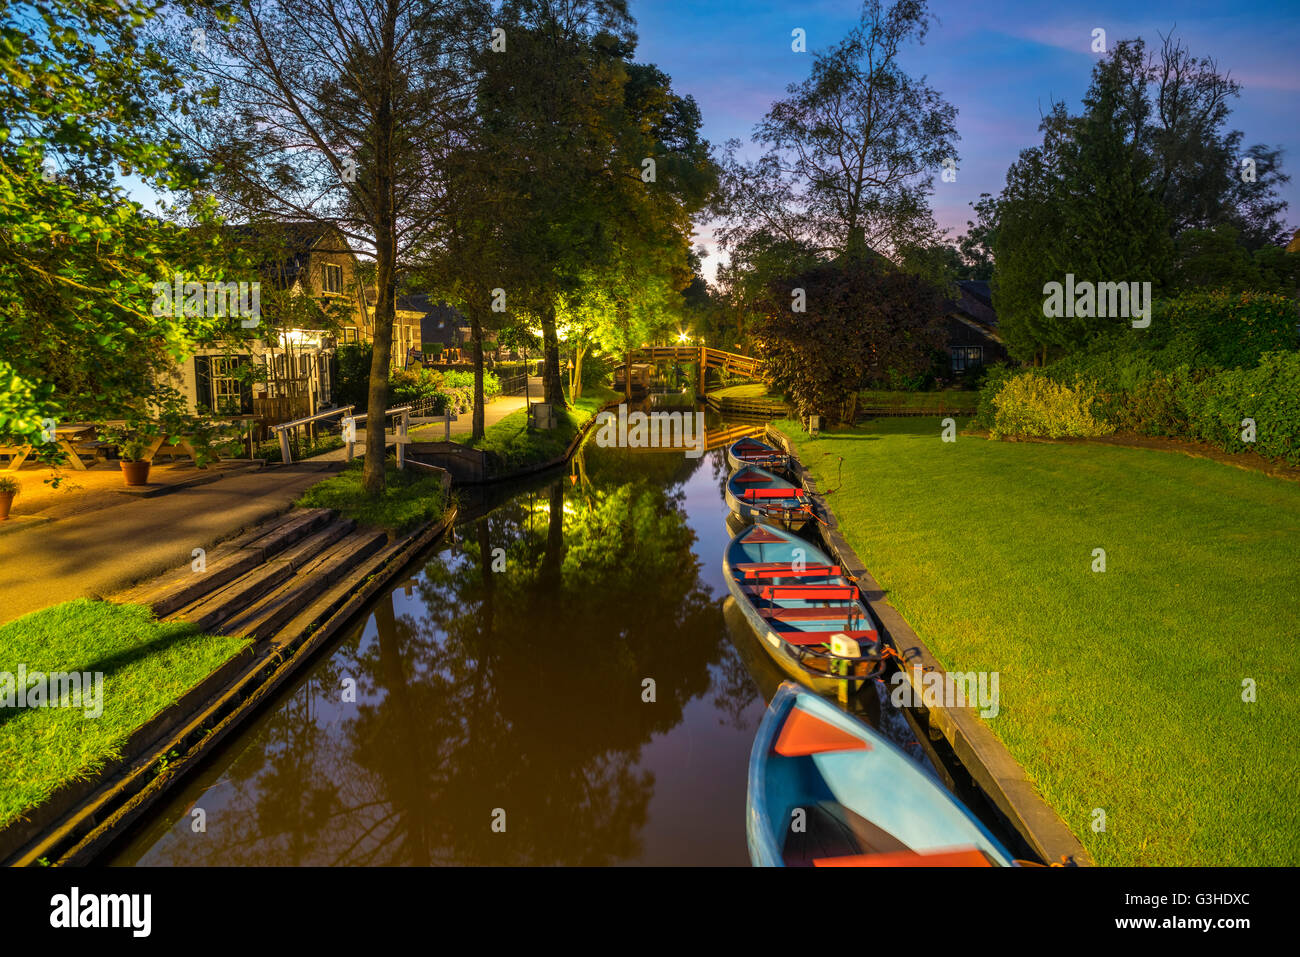 Giethoorn, Netherlands. Giethoorn Punts, or Punters, punting boats for rent in the Dorpsgracht or Village Canal - Stock Image